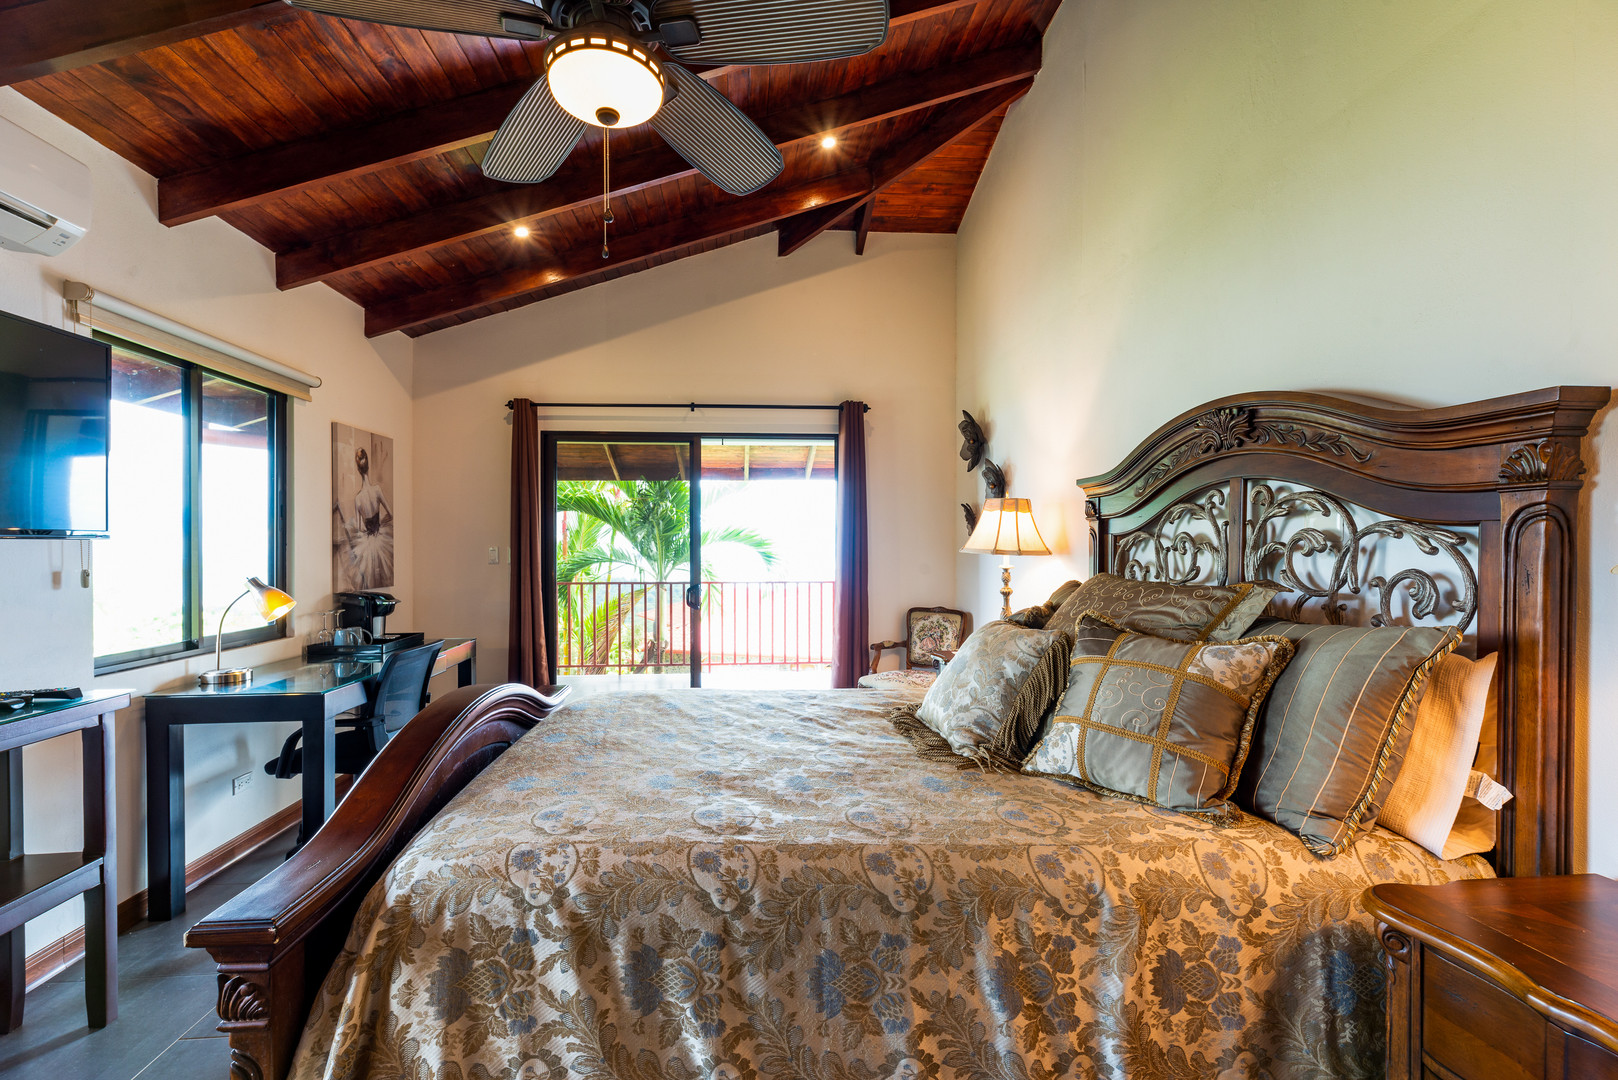 Comfortable and luxurious rooms